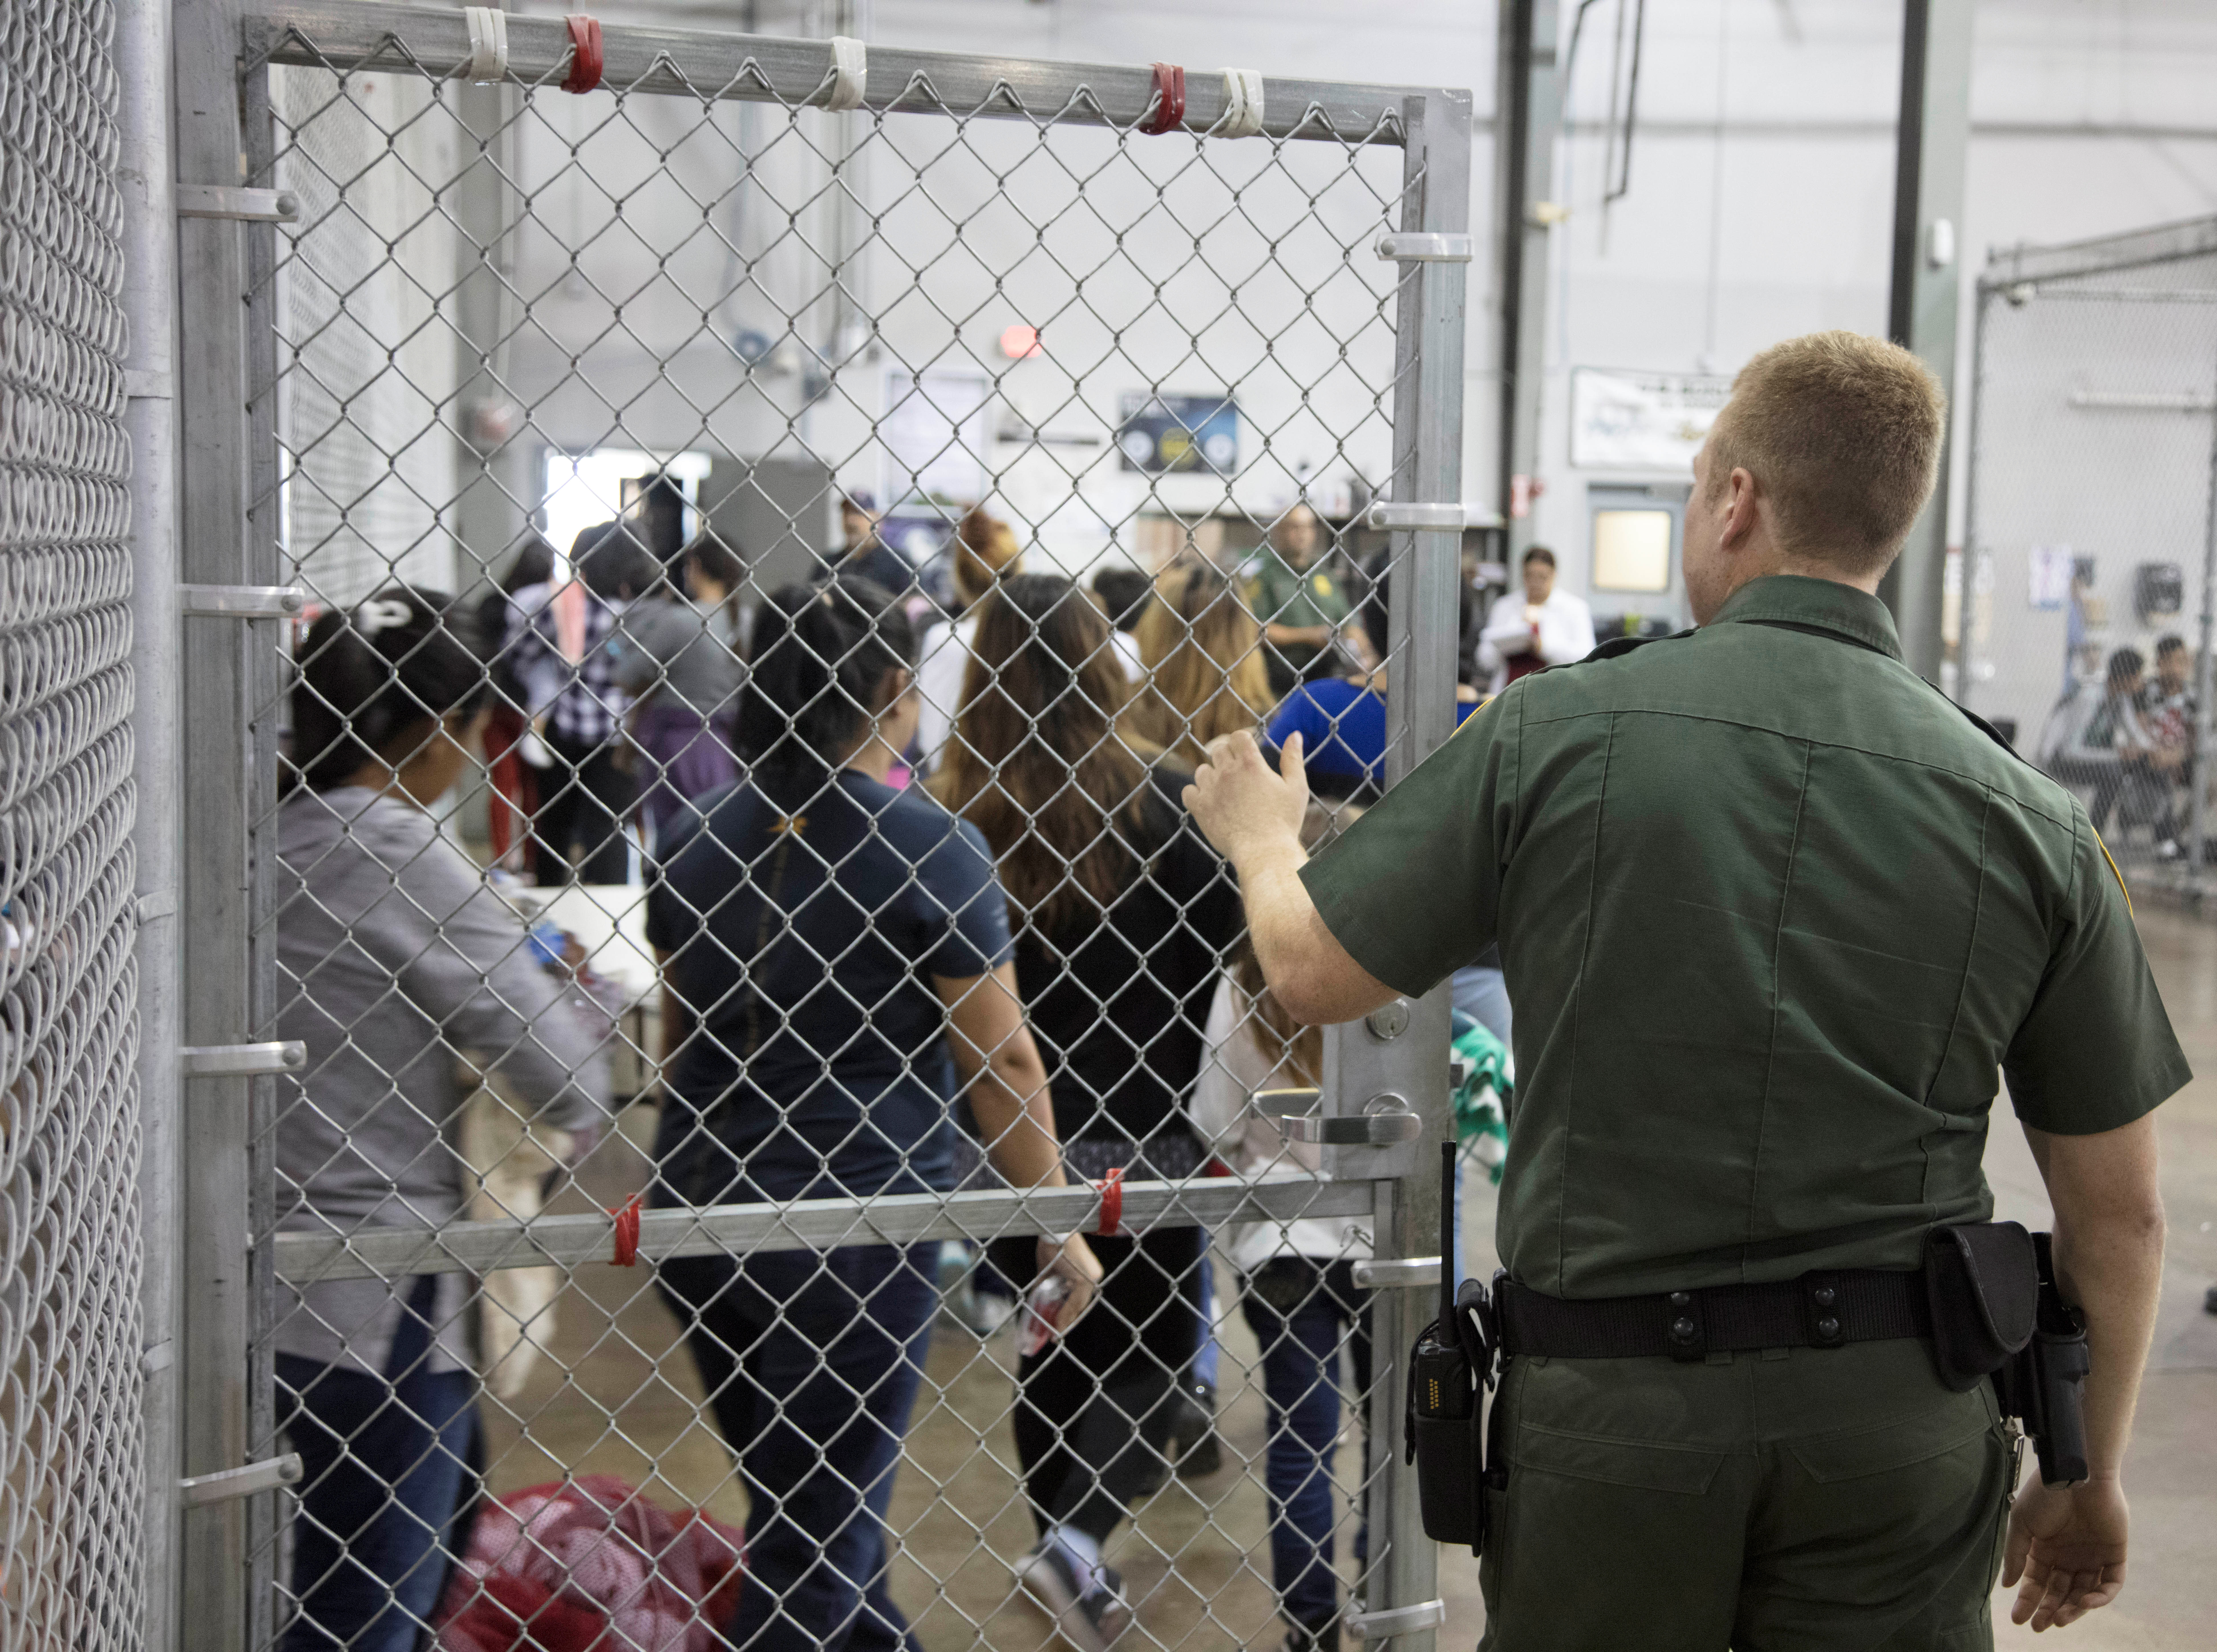 Photo inside U.S. Customs and Border Protection (CBP) detention facility shows detainees inside fenced areas at Rio Grande Valley Centralized Processing Center in Texas. Picture taken on June 17, 2018, provided by US Customs and Border Protection.